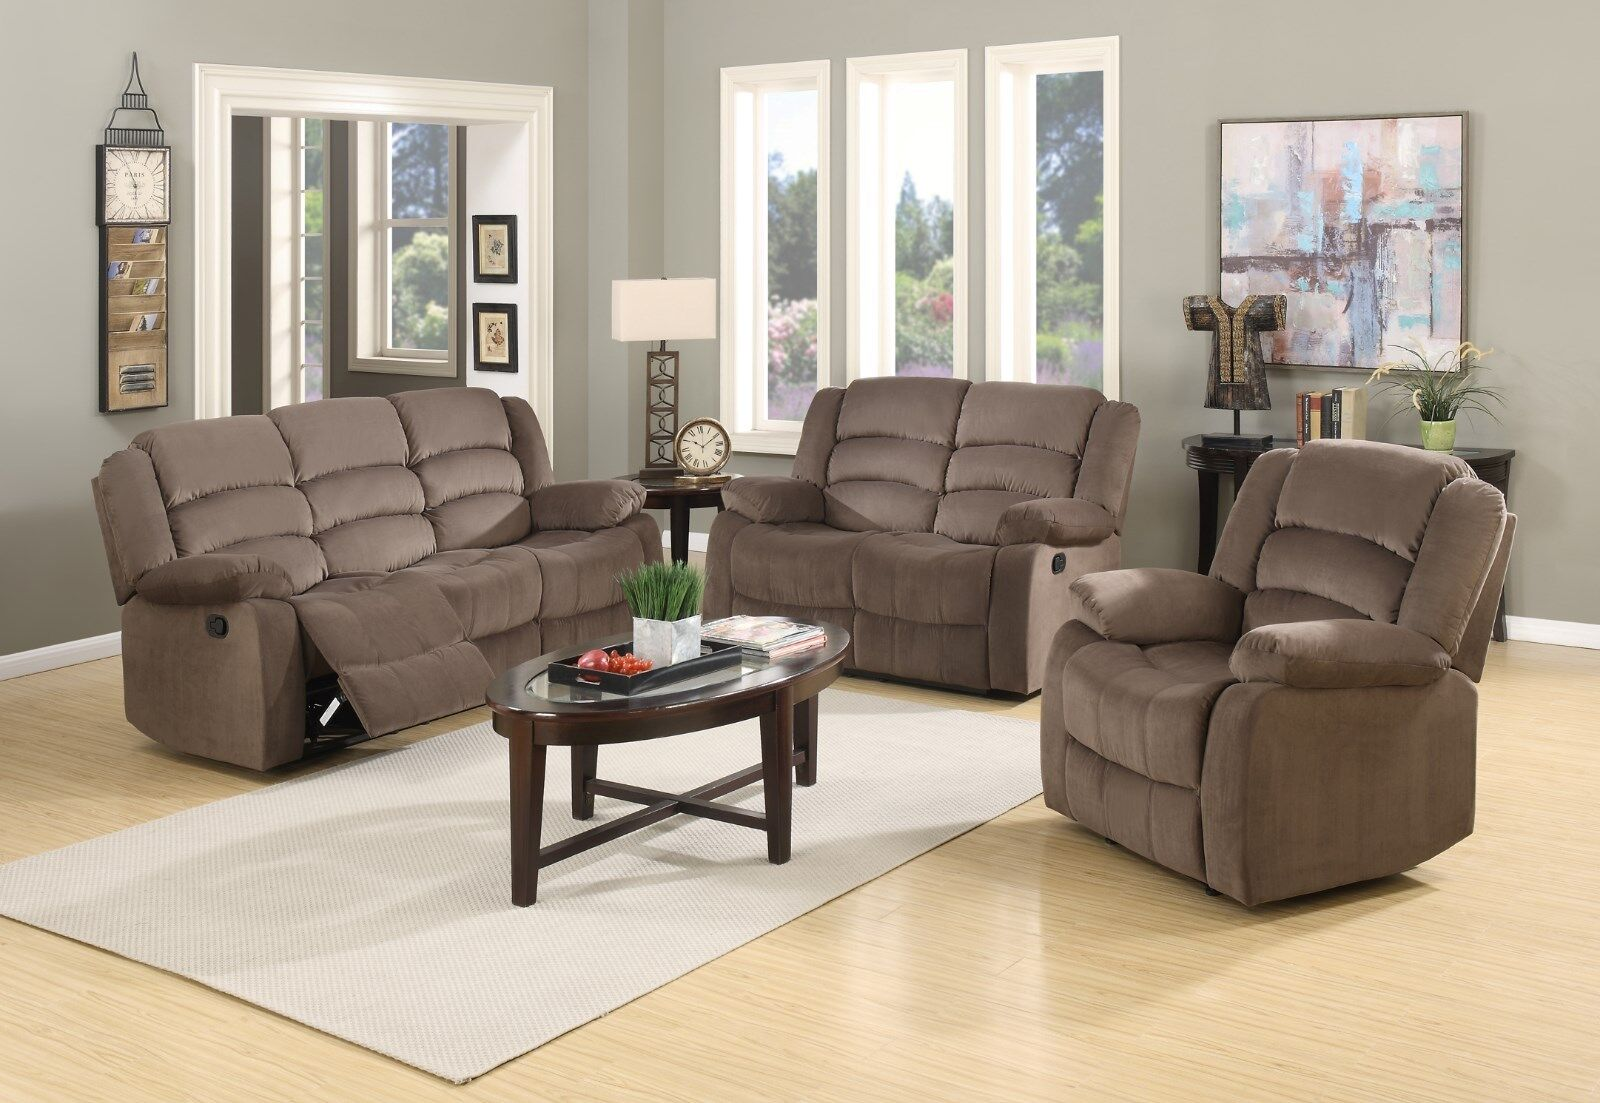 3 PCS Reclining Living Room Set in Chocolate color Motion